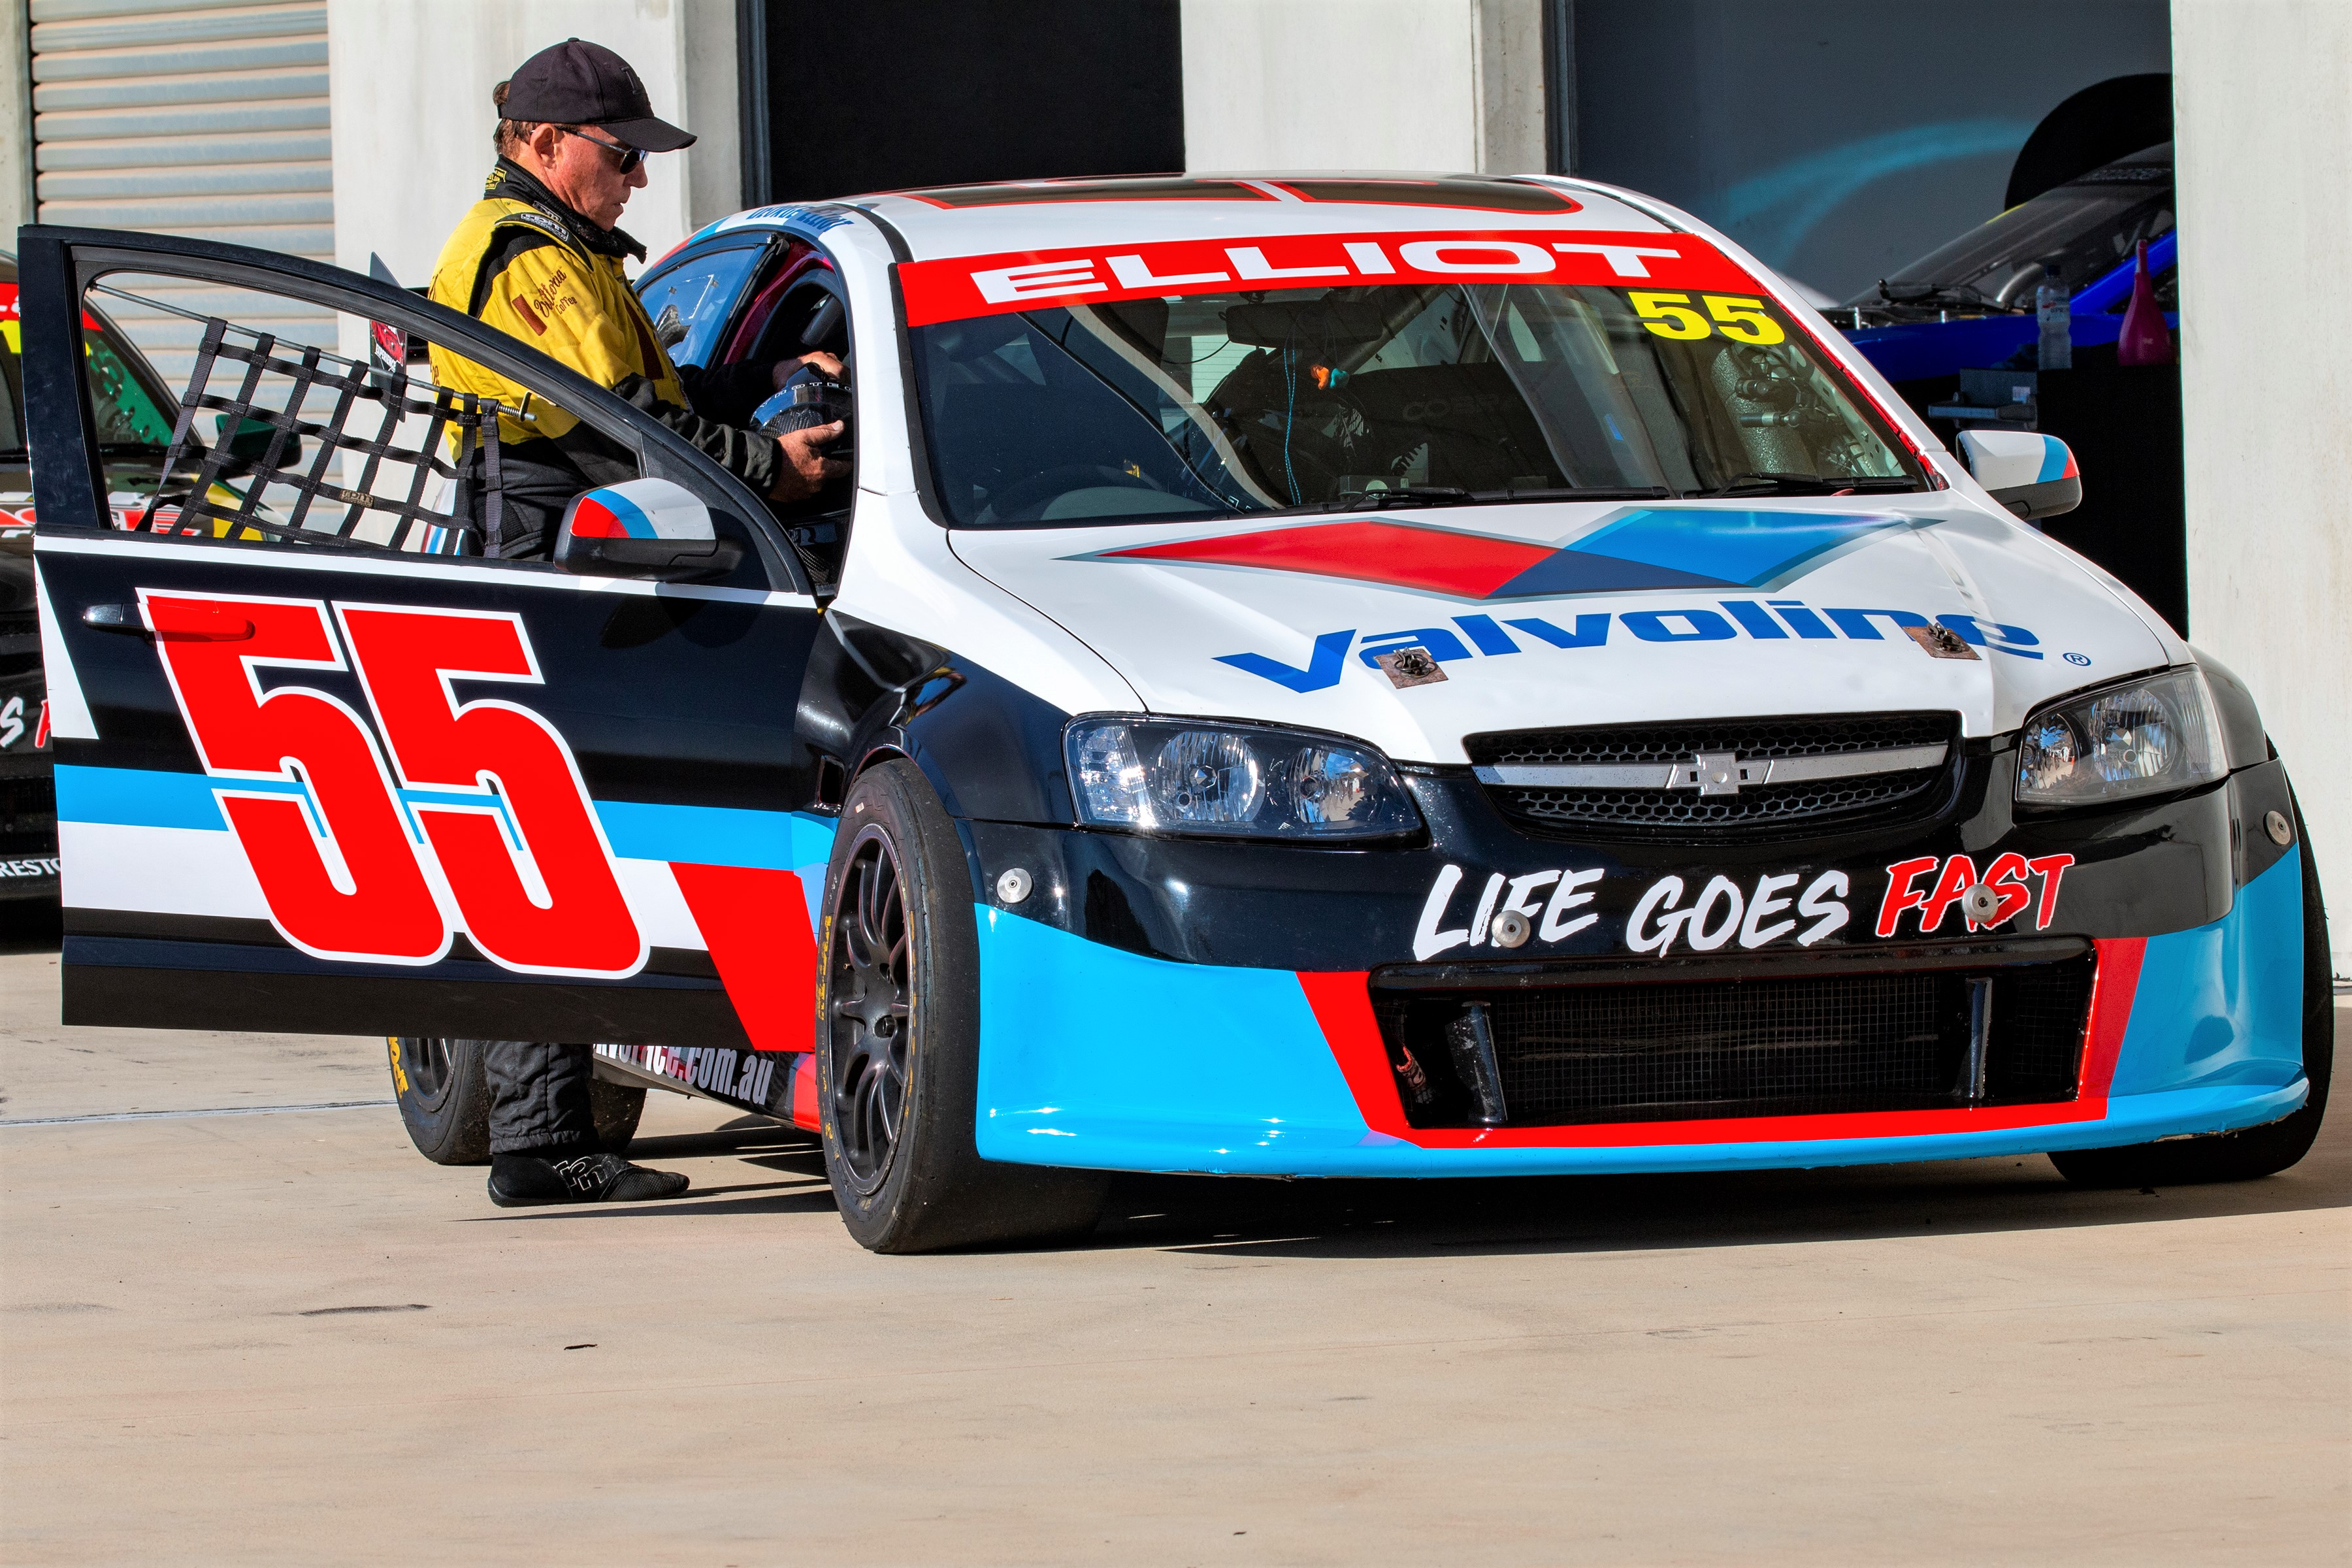 A drive in a V8 supercar makes the perfect 50th birthday gift